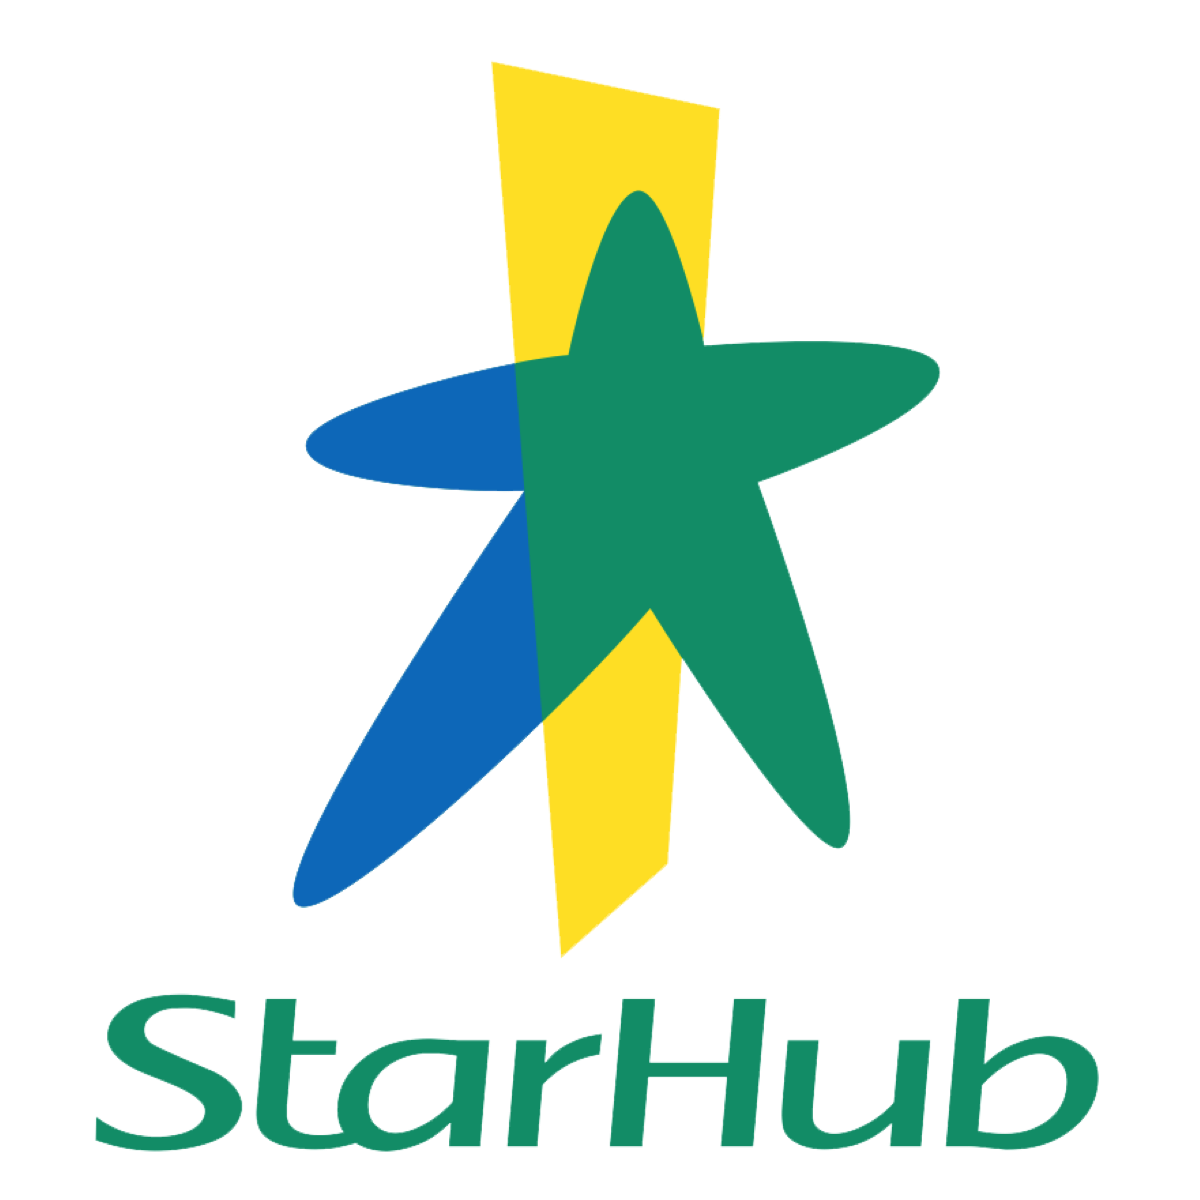 Starhub - CGS-CIMB Research 2018-08-14: A Glimmer Of Starlight